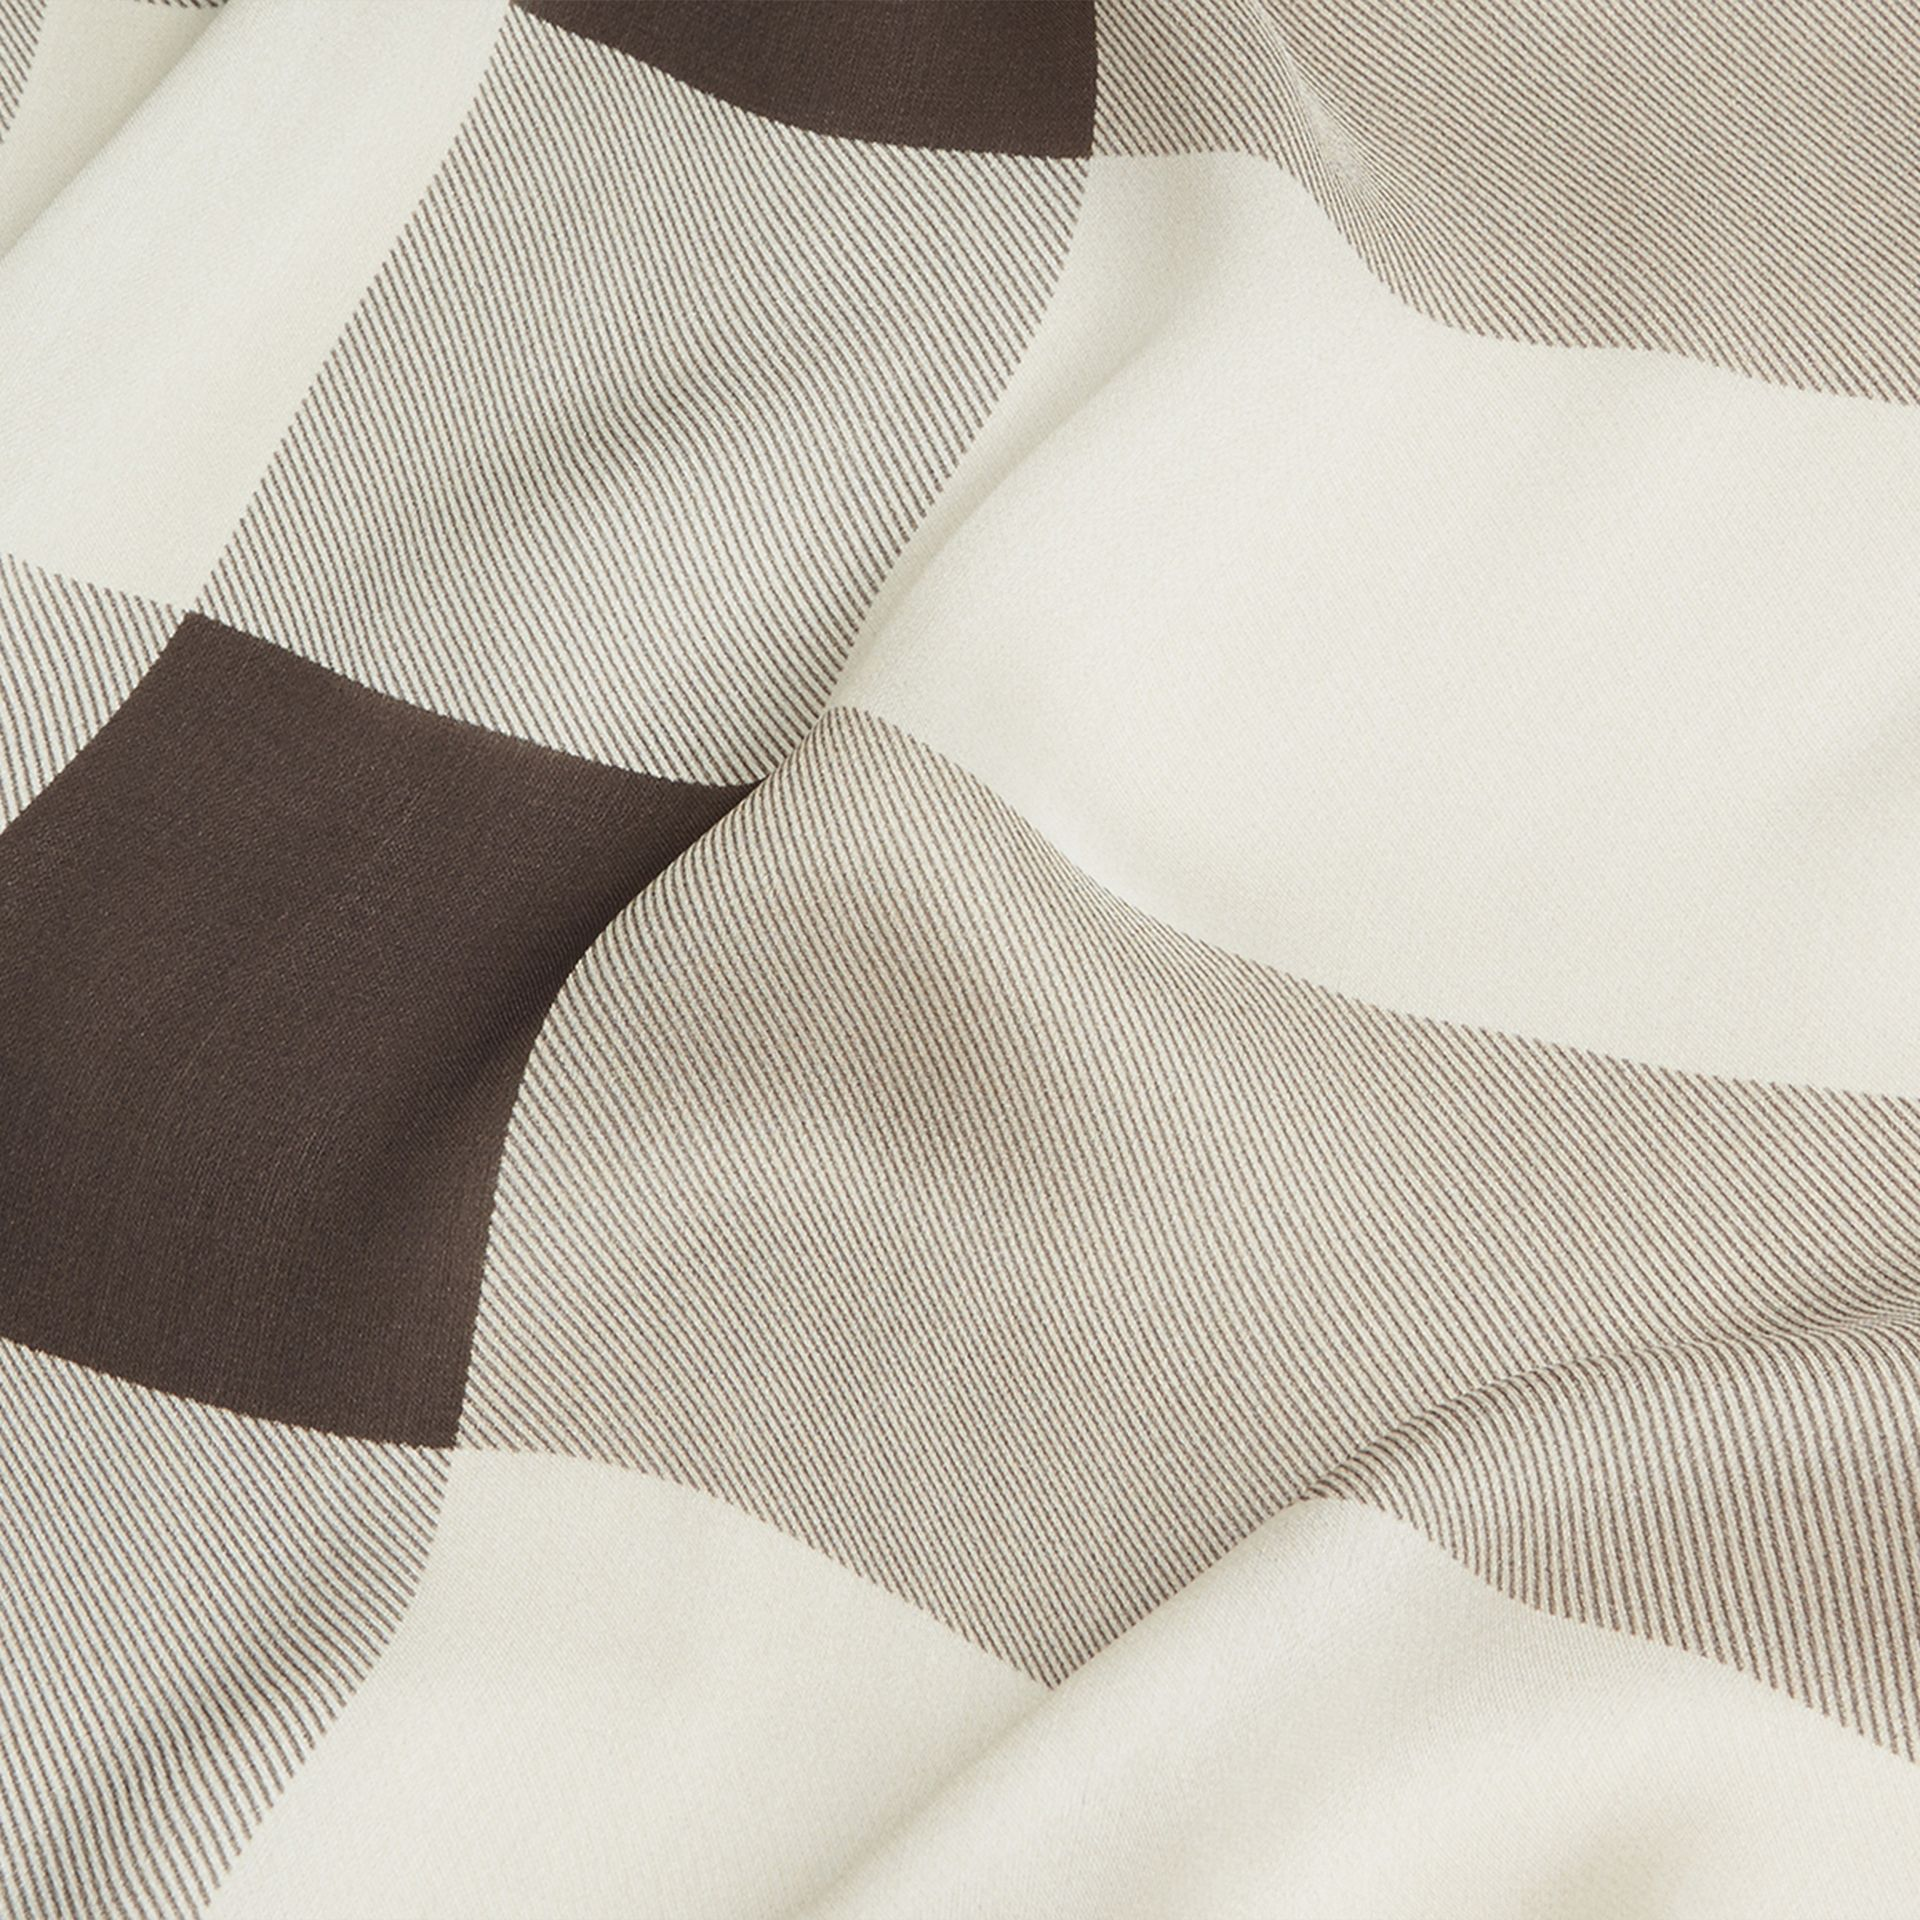 Lightweight Check Silk Scarf in Stone - Women | Burberry Hong Kong - gallery image 2